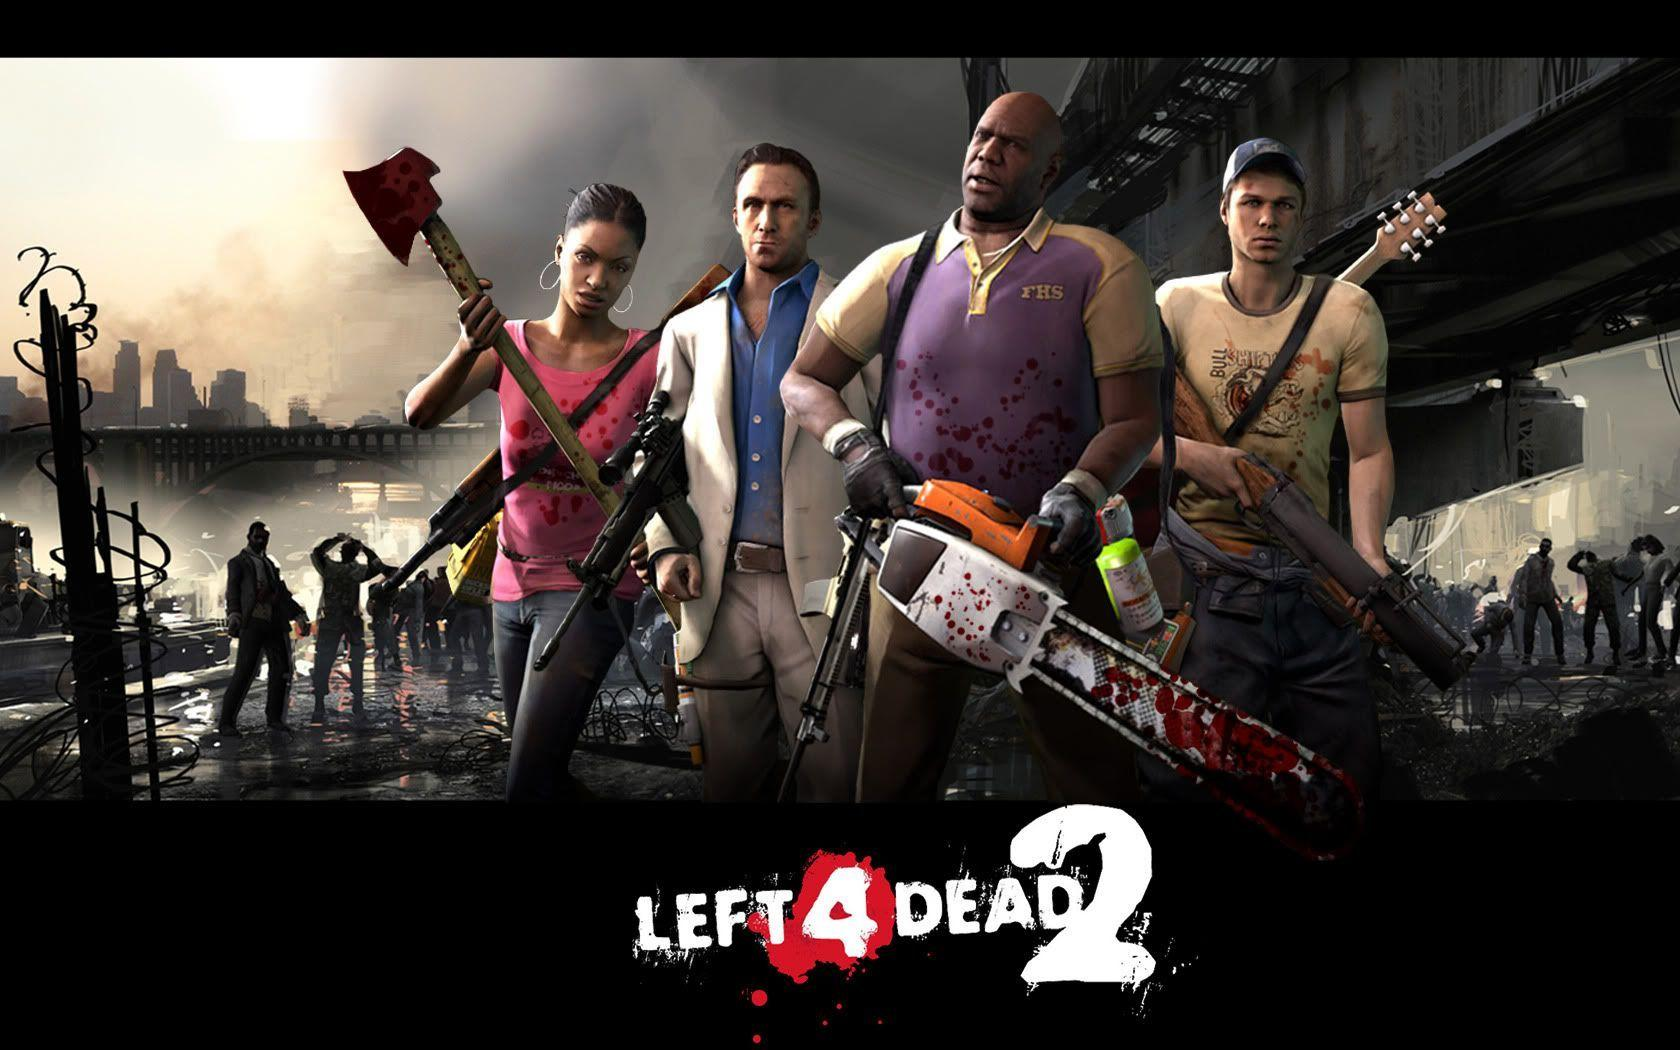 Left 4 Dead 2 Wallpapers - Wallpaper Cave